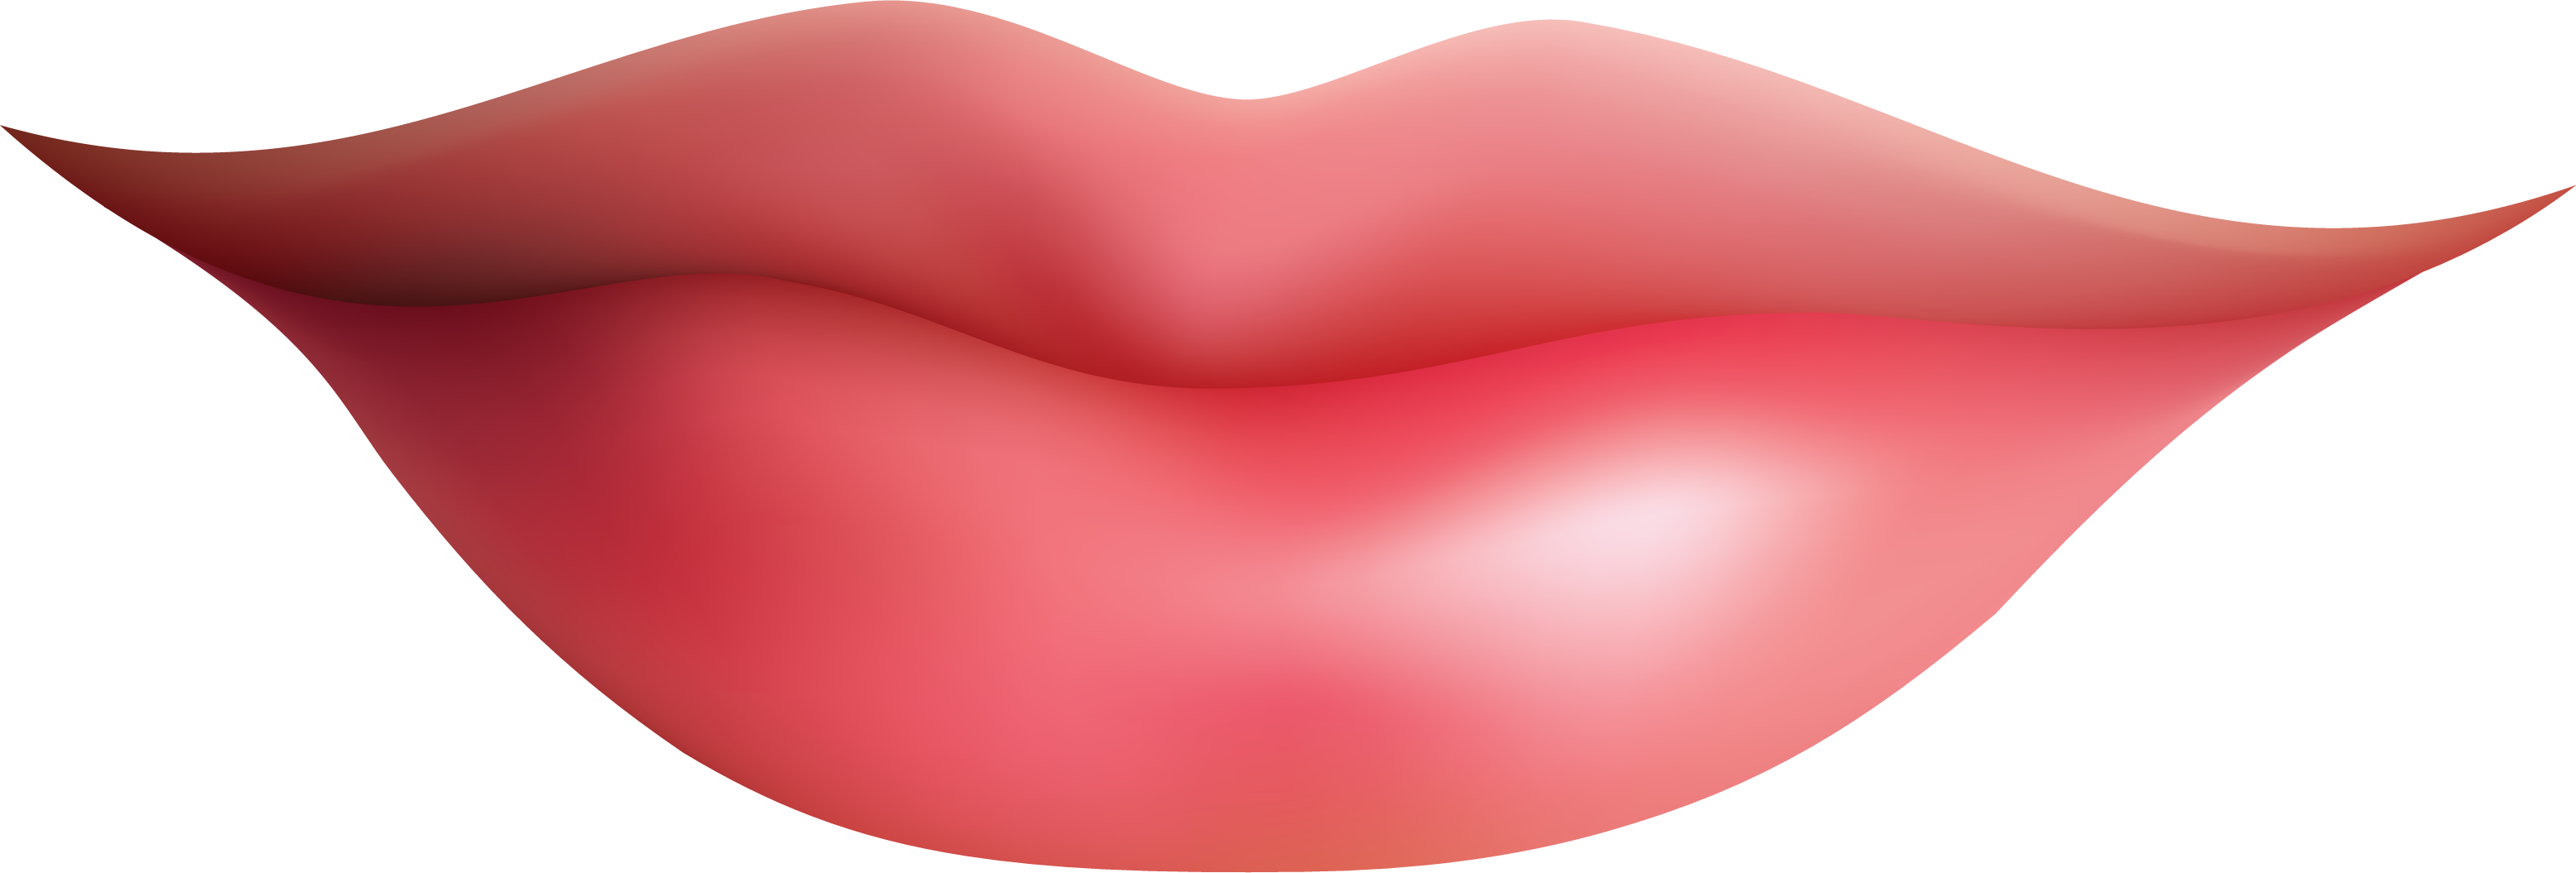 Lips clipart #6, Download drawings